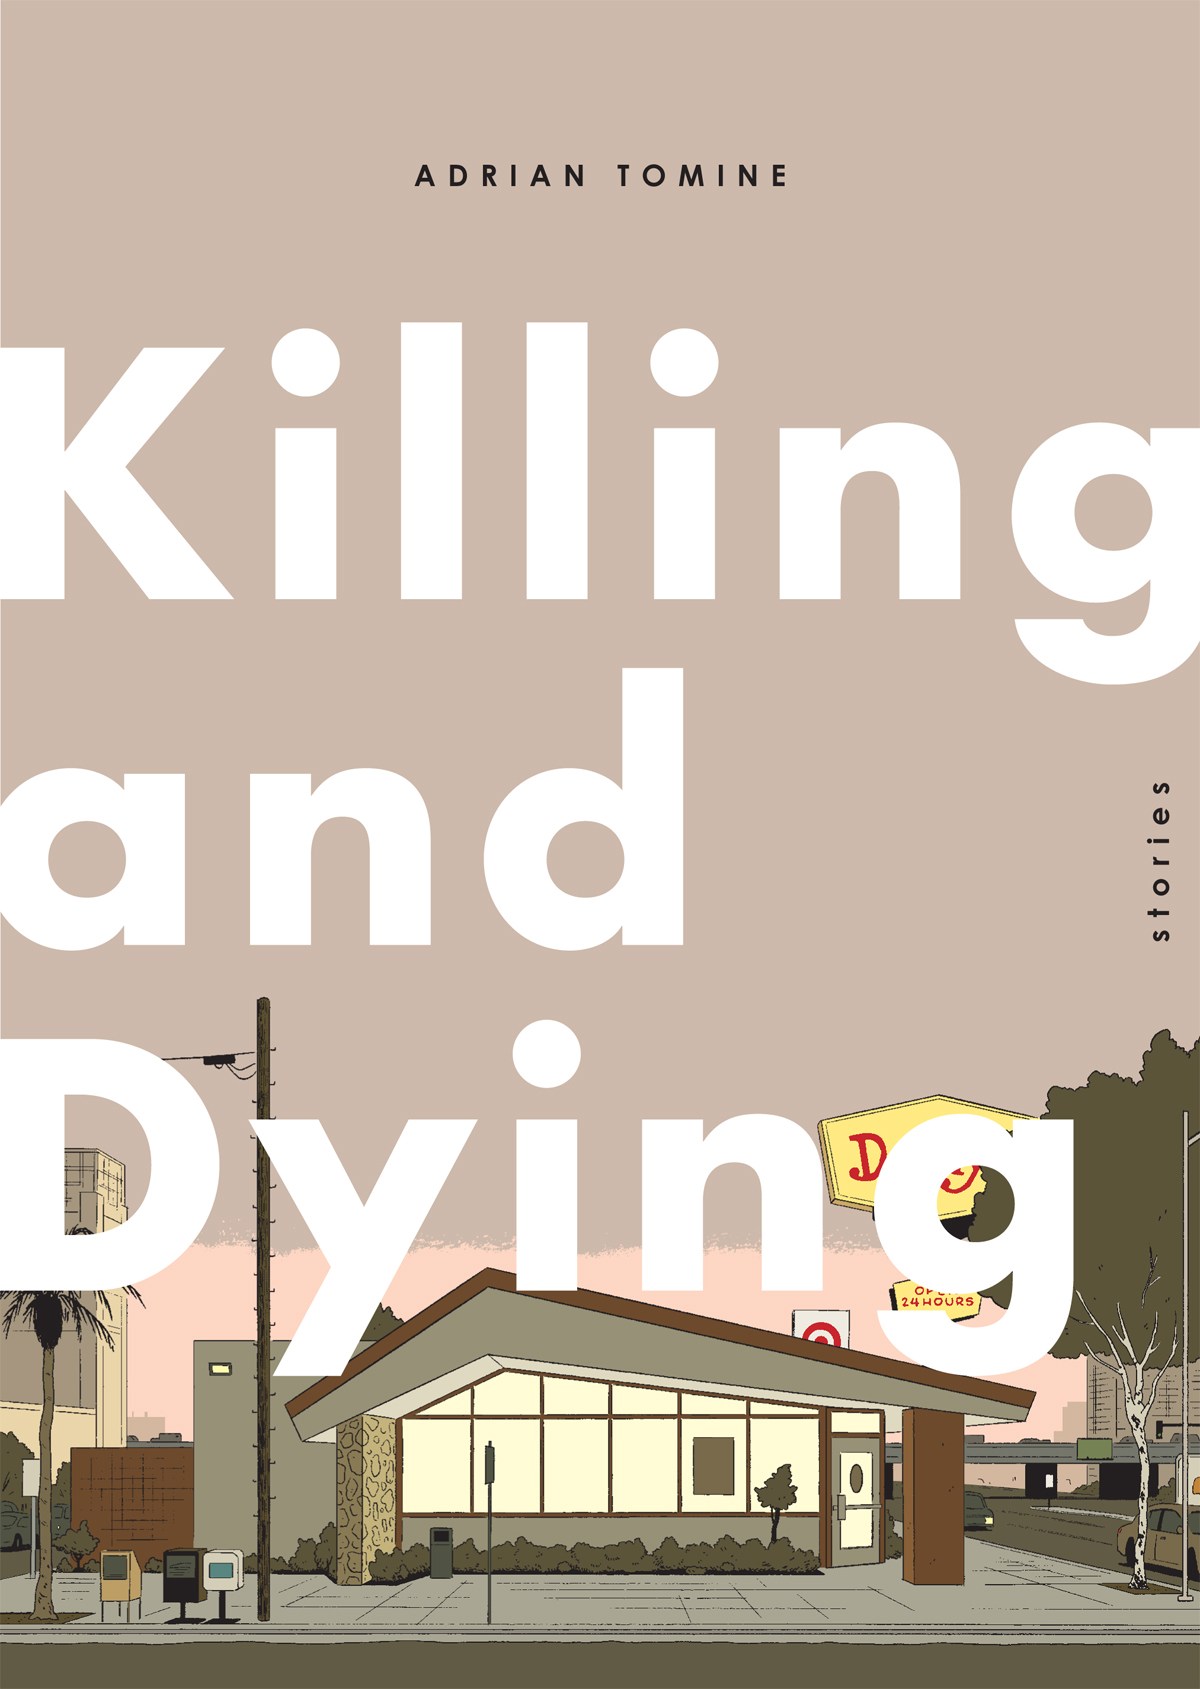 Drawn dying Tomine Adrian With Killing Quarterly